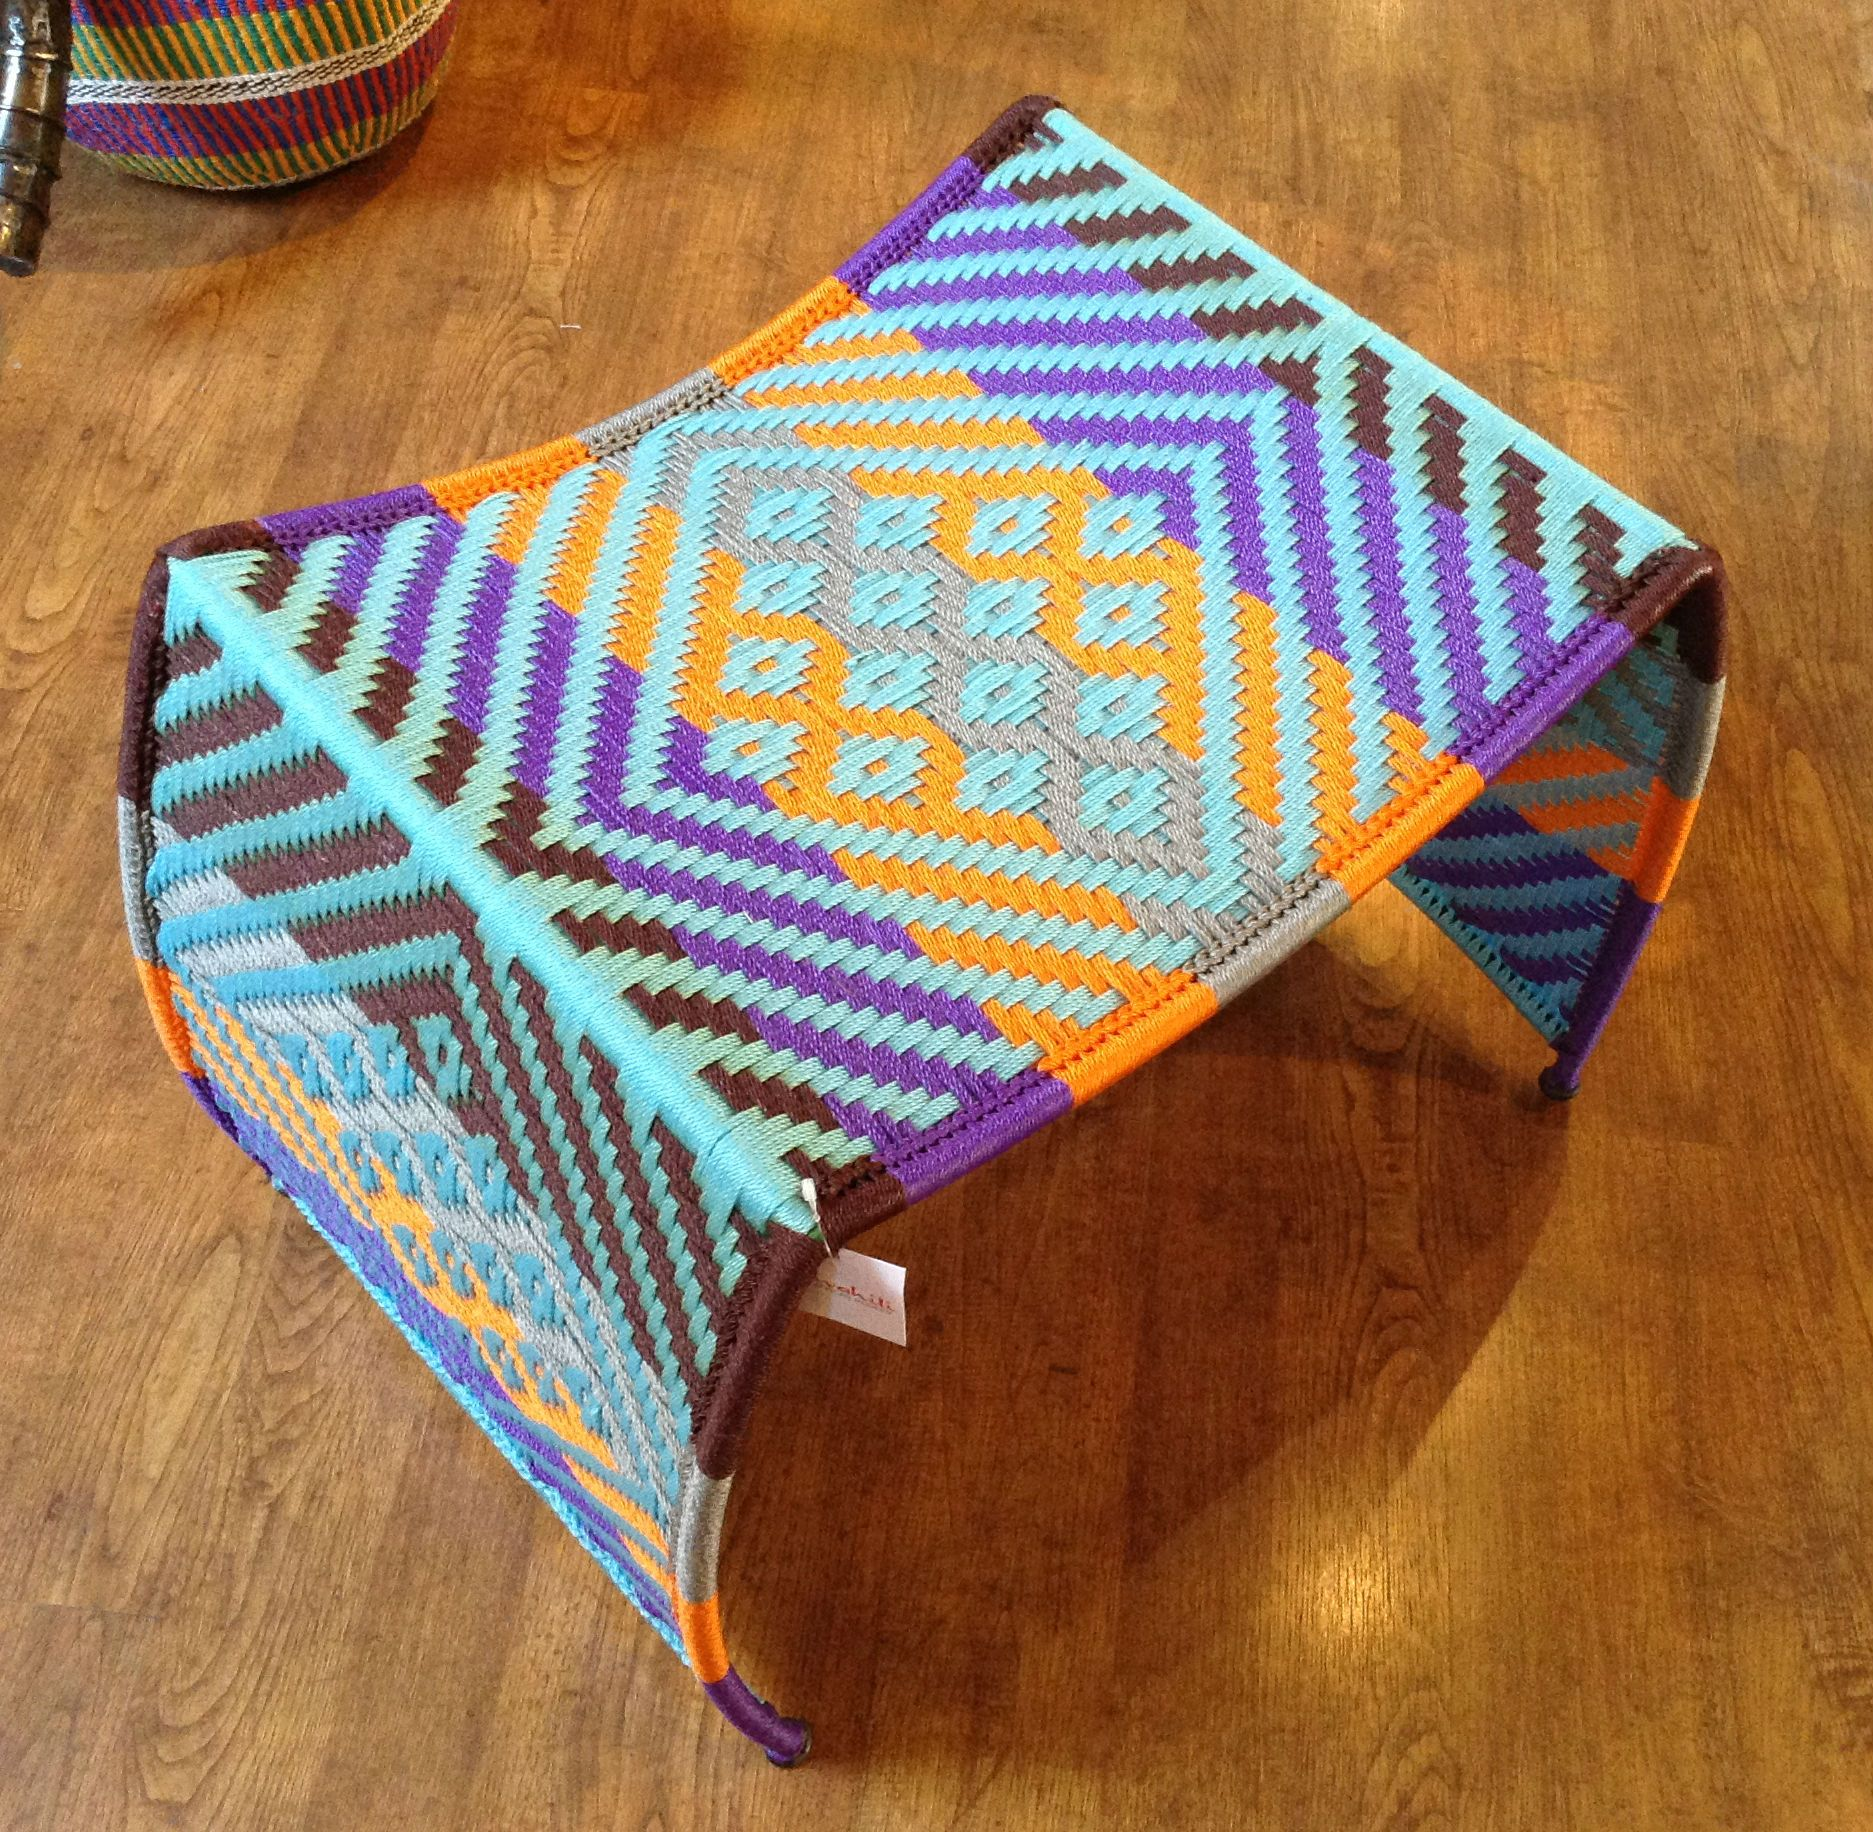 Multi Color Stool hand woven in Senegal, East Africa.  Swahili African Modern Fair Trade Gifts and Home Decor #fairtrade #wovenfurniture